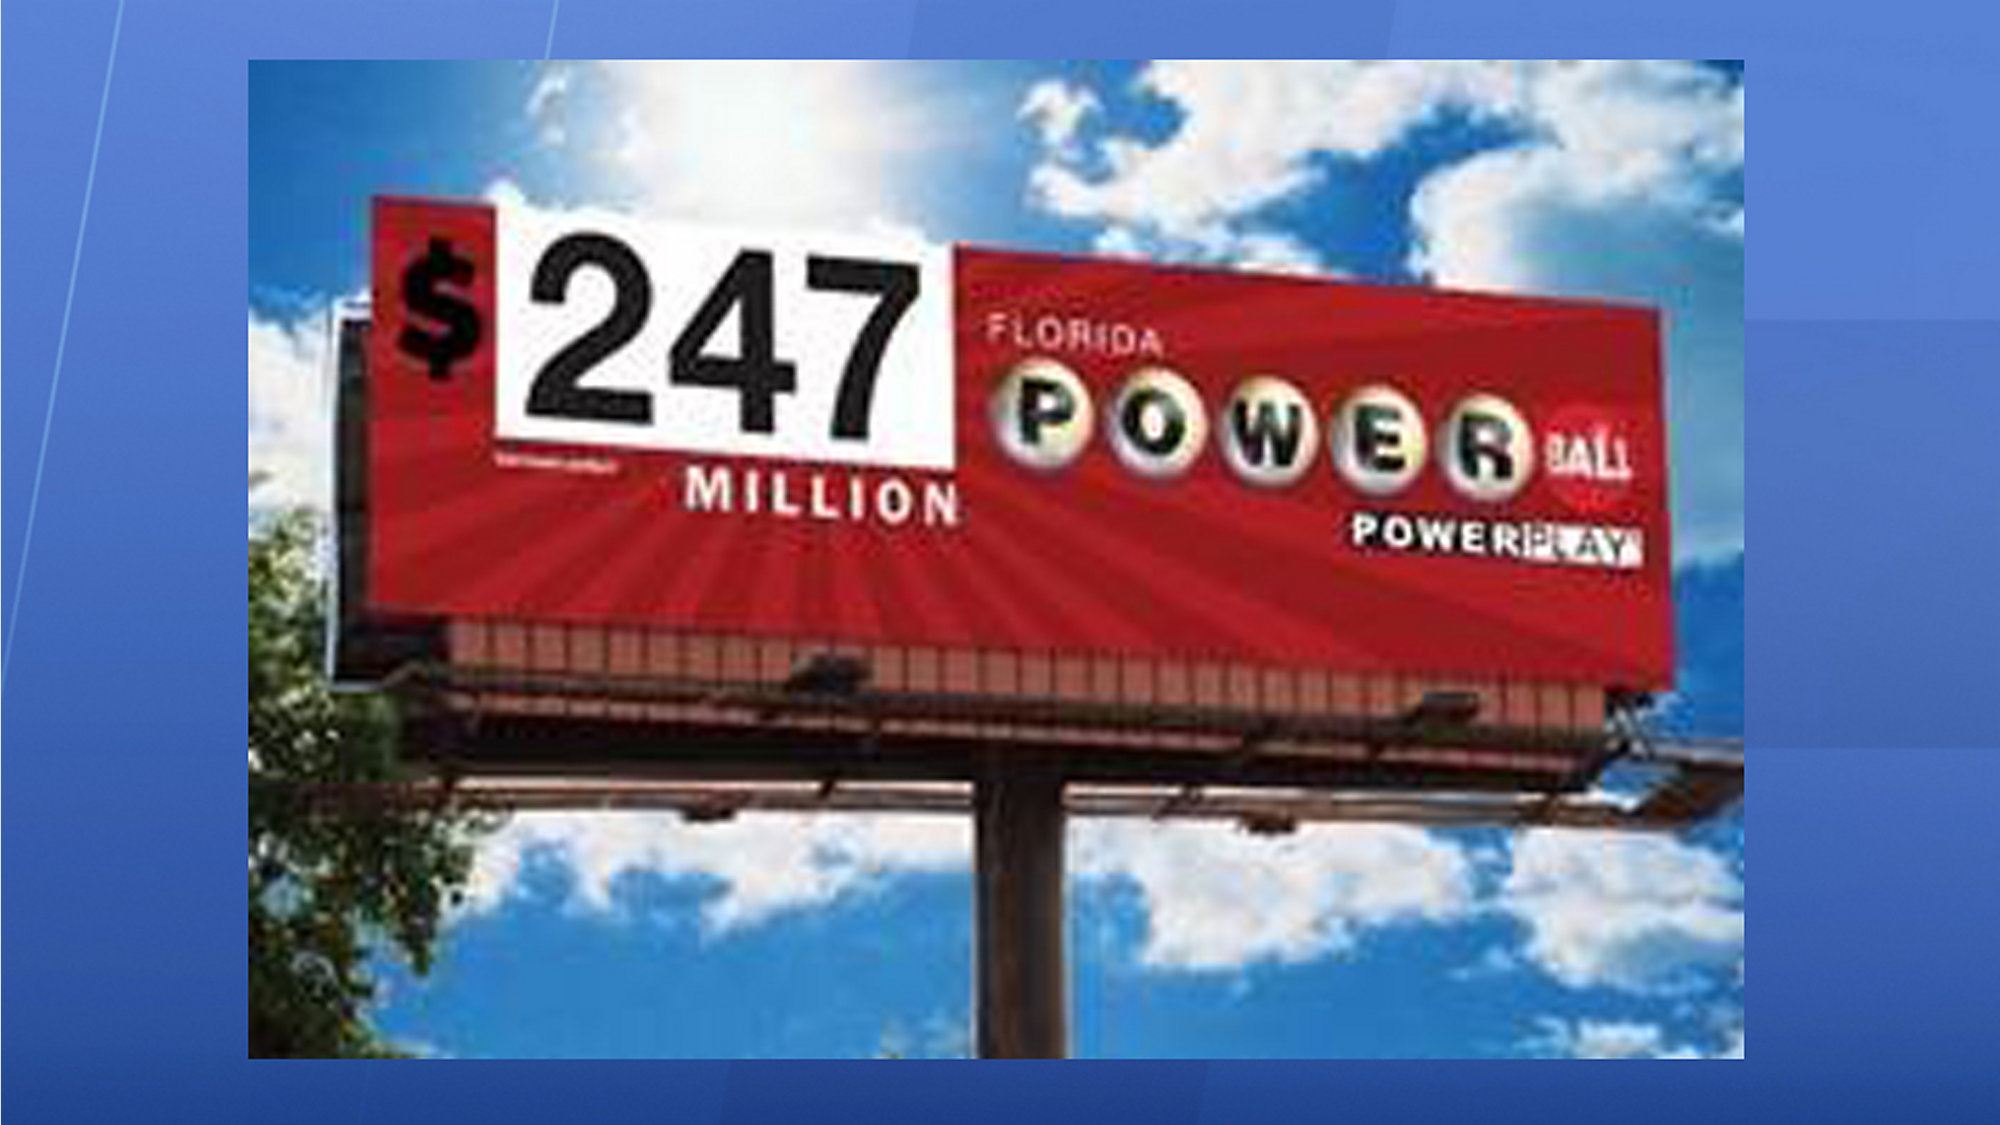 Powerball Jackpot Rises To 247 Million